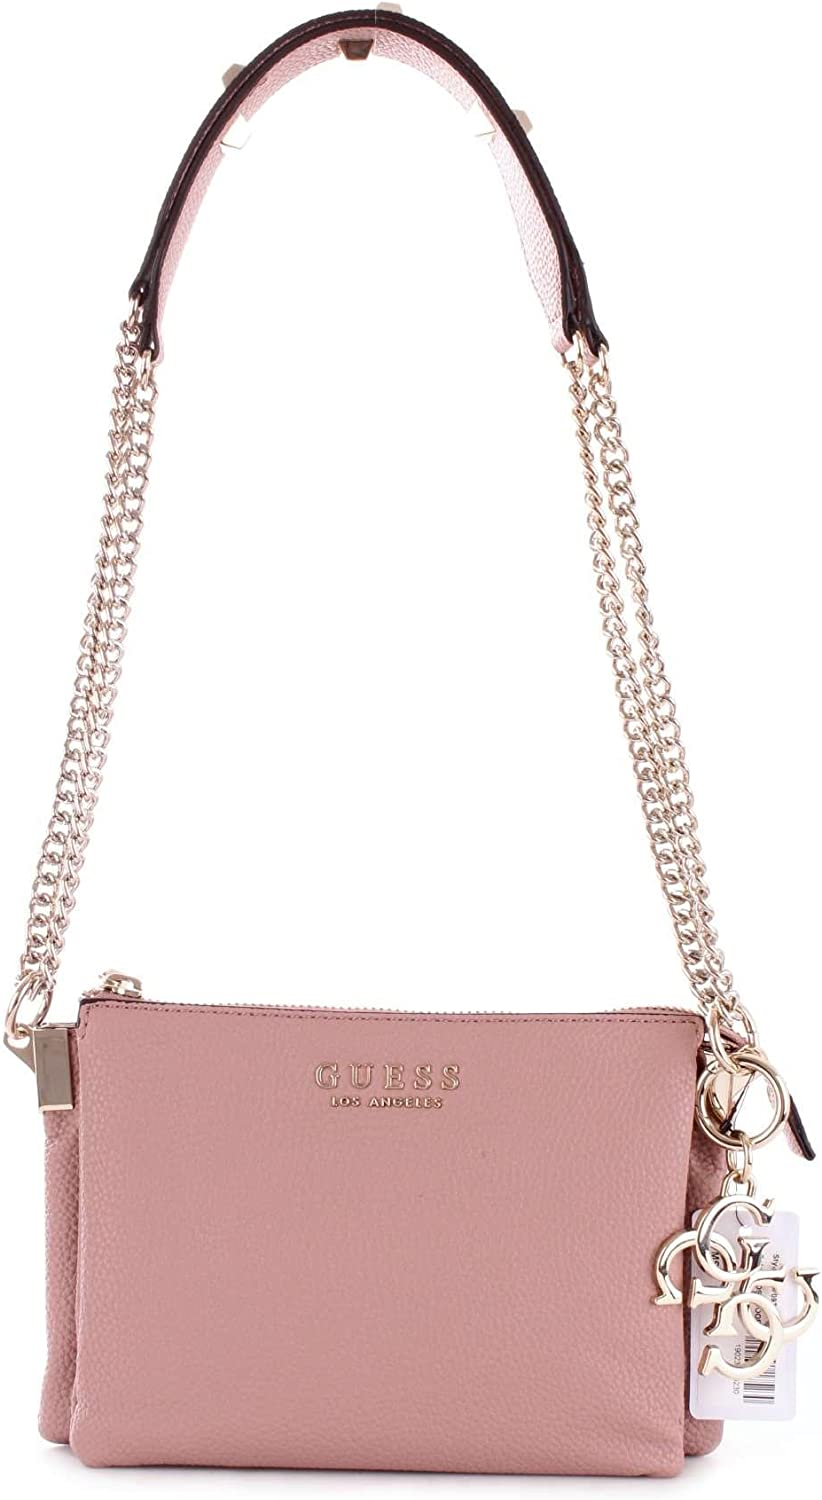 Guess Sac bandoulière femme Brooklyn (hwvg70 97140) taille 17 cm